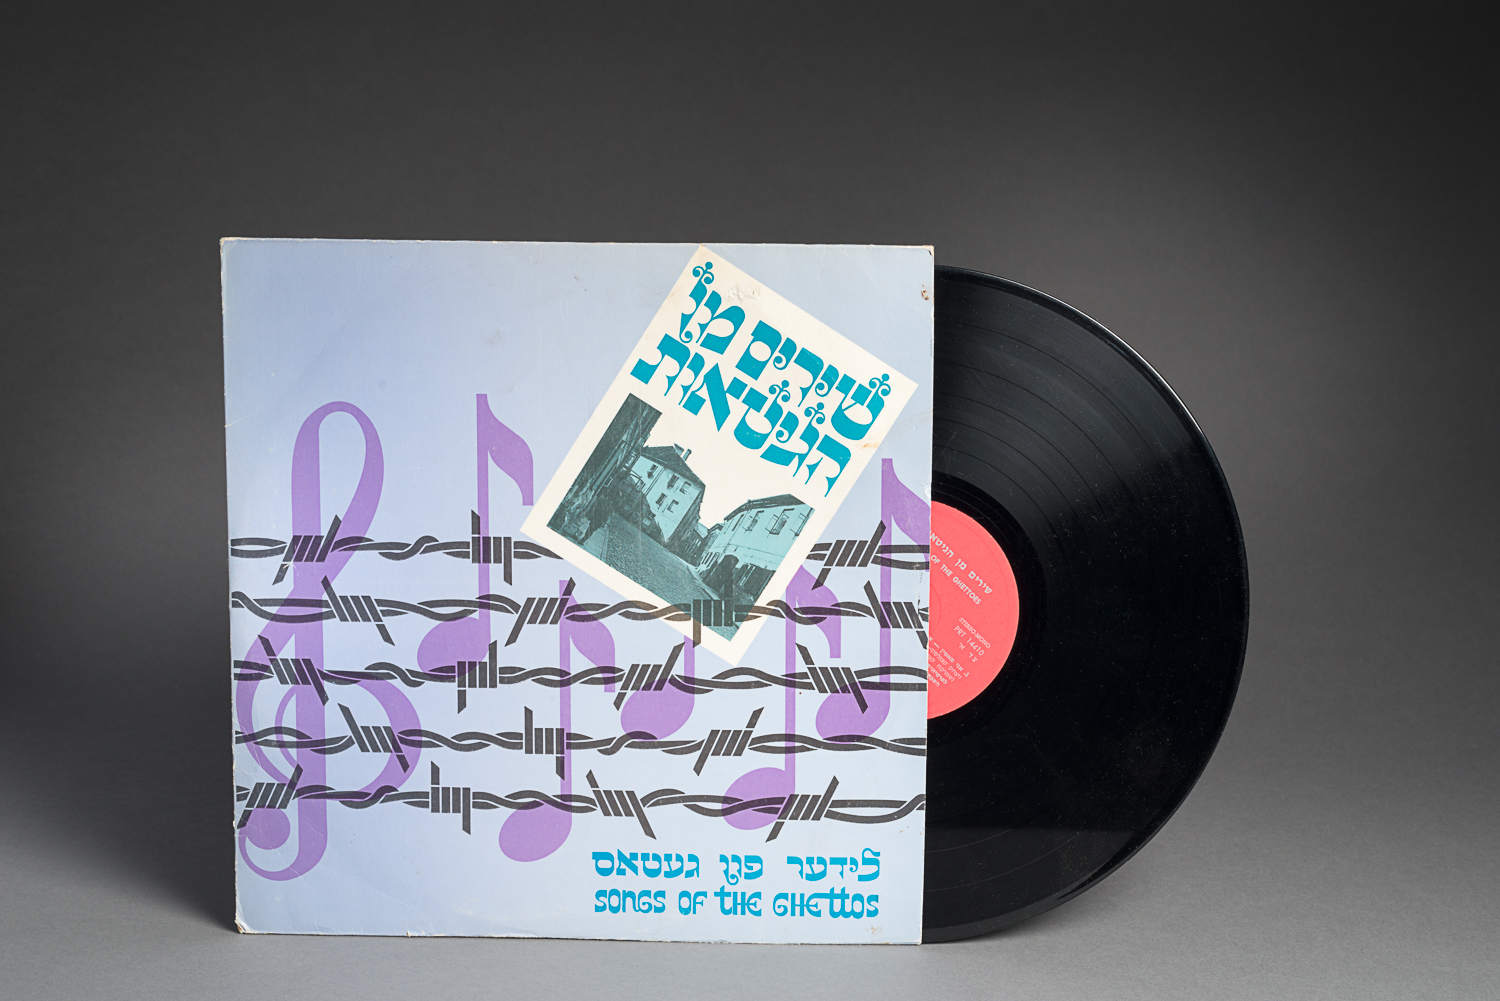 Album recorded by singer Shlomo Kaplan in 1974 in Israel. It reprises popular Jewish songs that were often heard in the ghettos during the Holocaust. (Photo: Peter Berra)